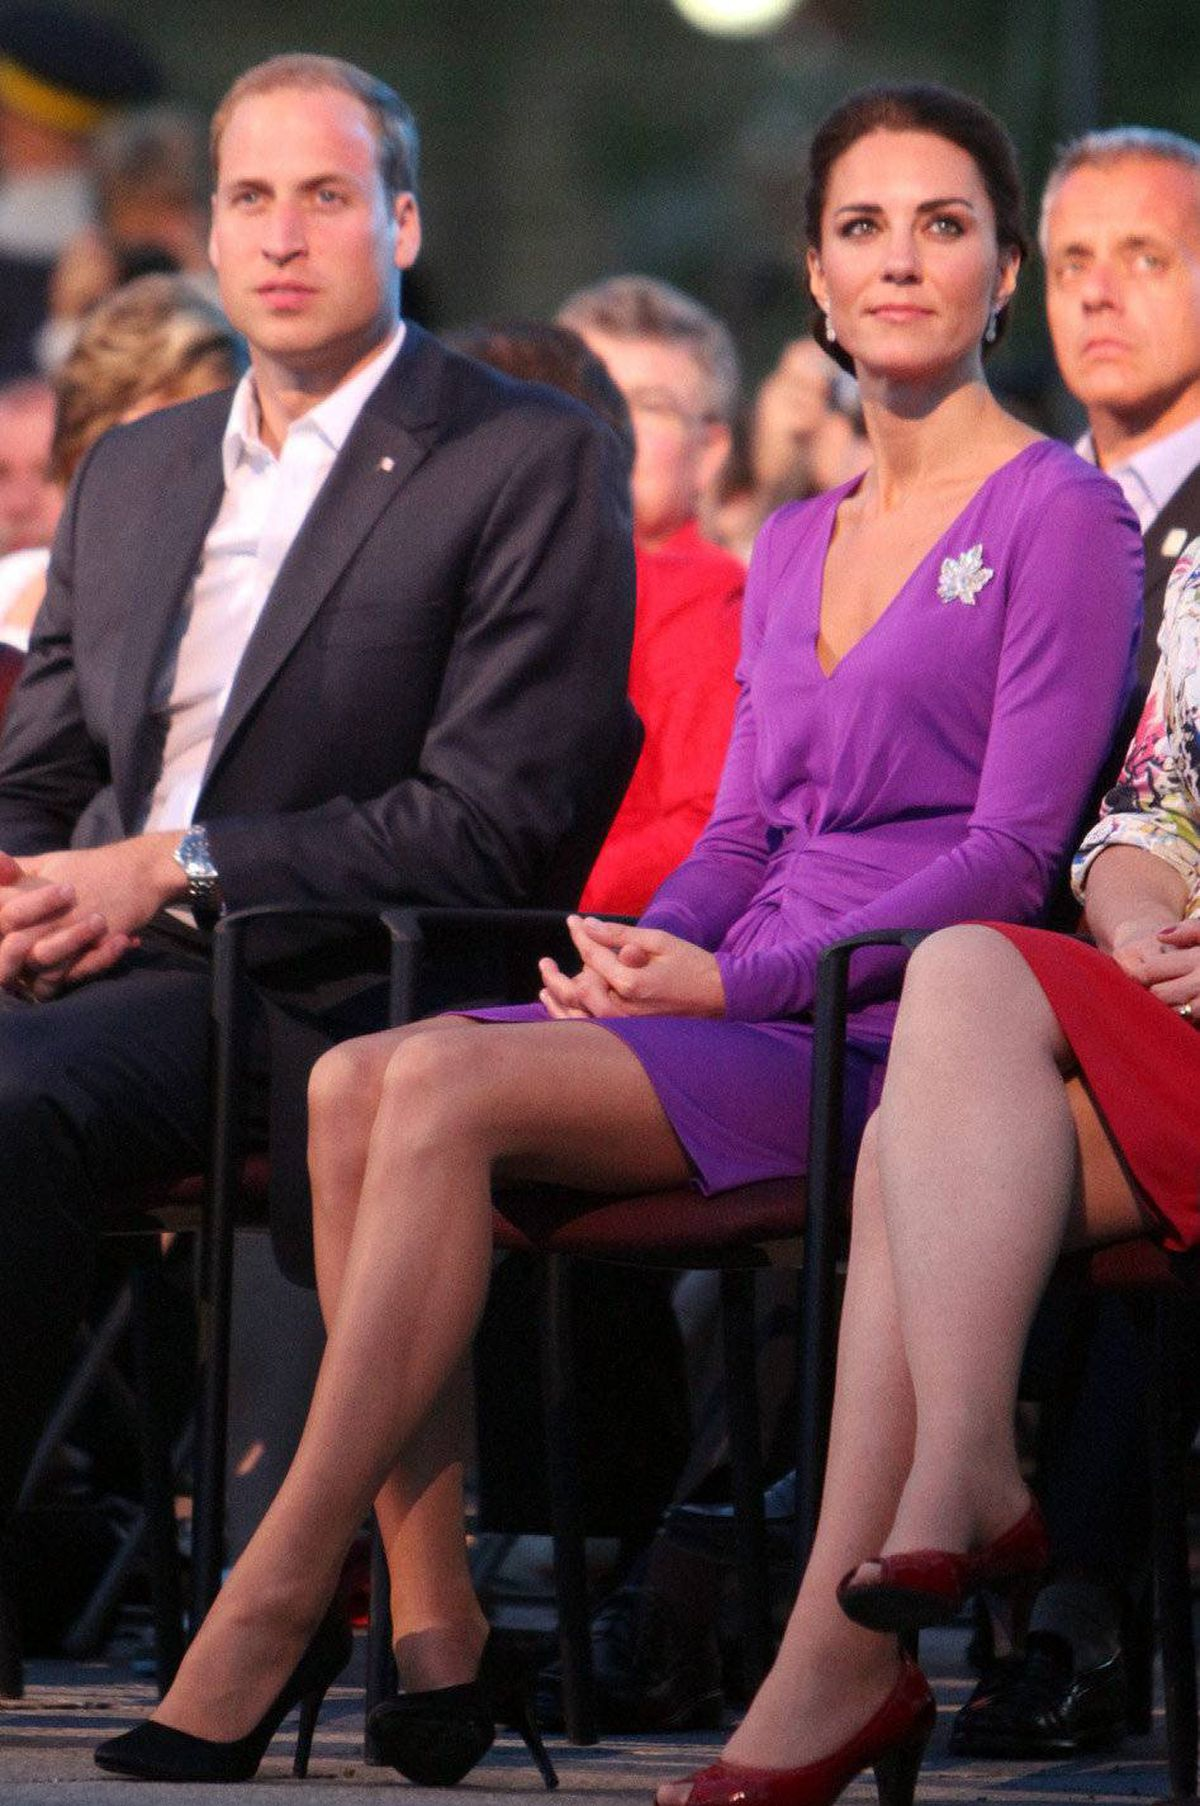 The Duke and Duchess of Cambridge take in the Canada Day evening celebrations and performances in Ottawa, Friday July 1, 2011.